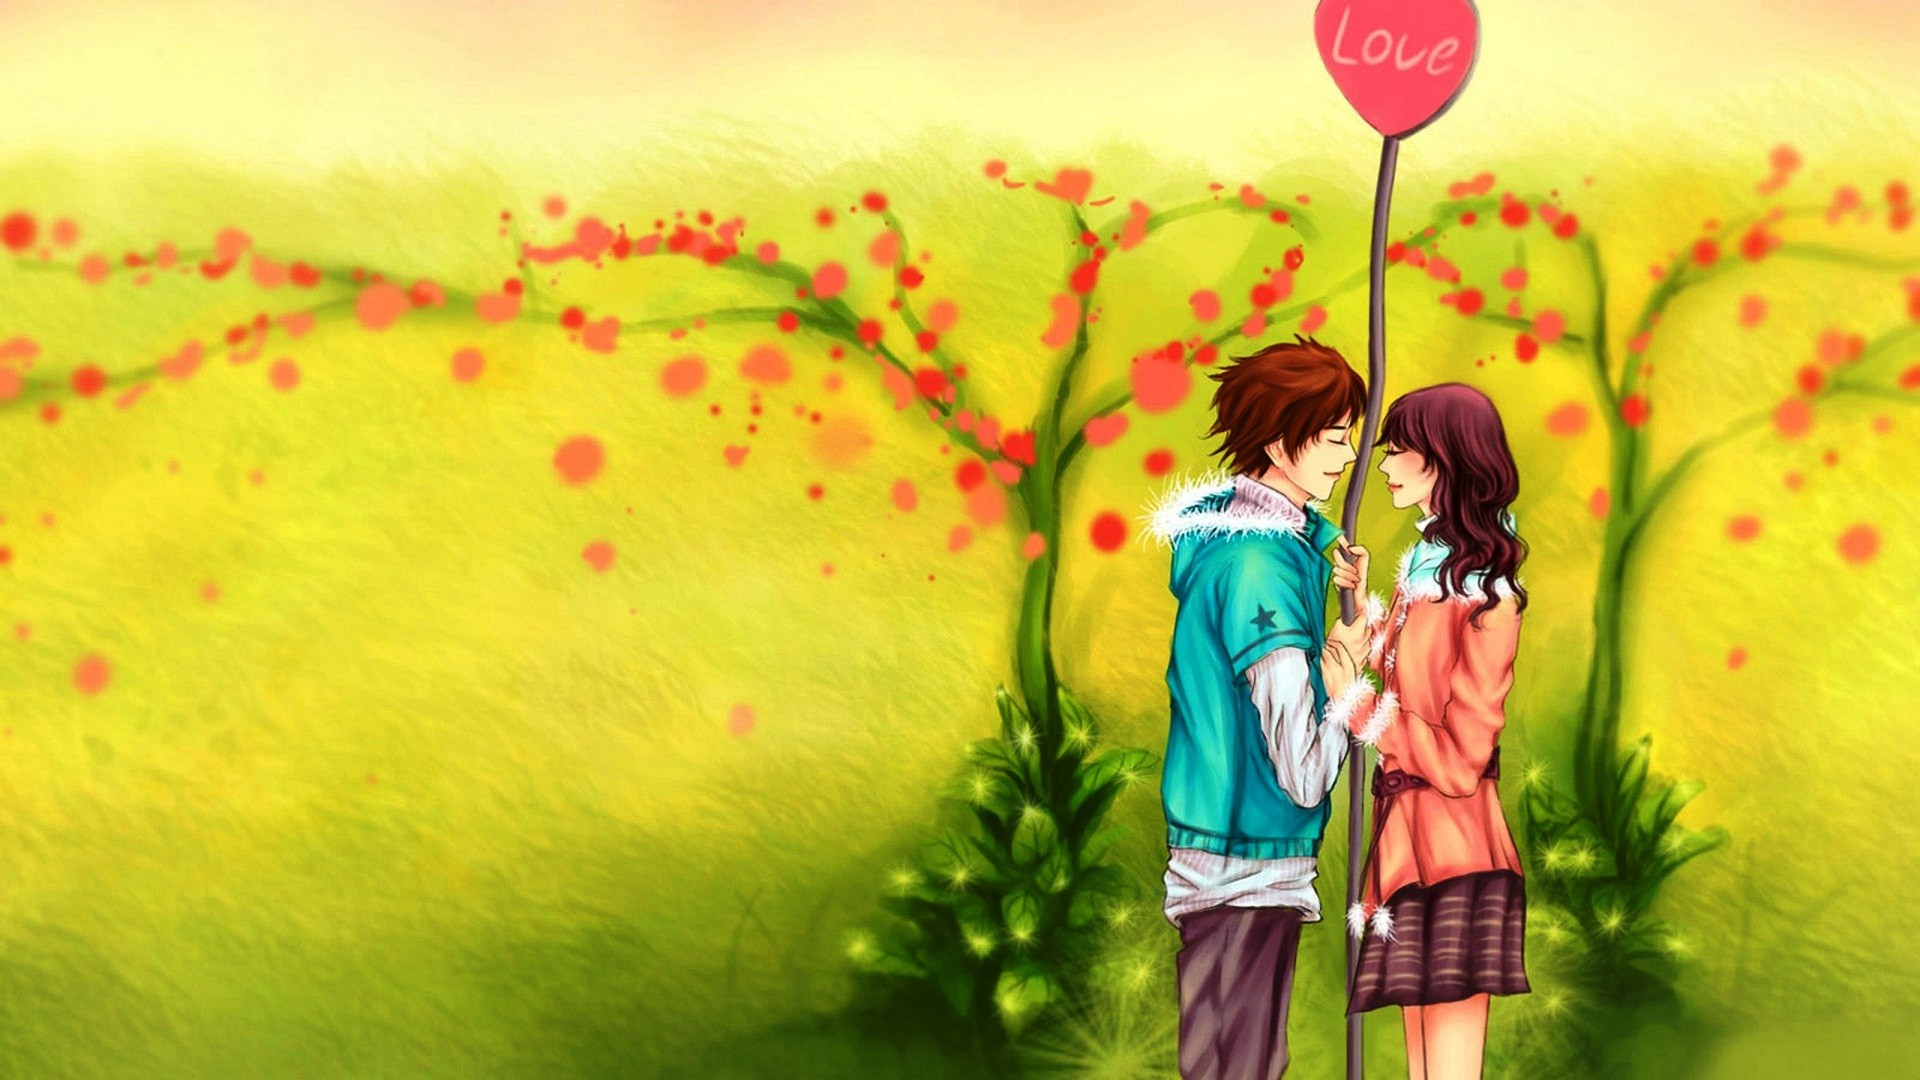 Cute Romantic Wallpapers (64+ pictures)